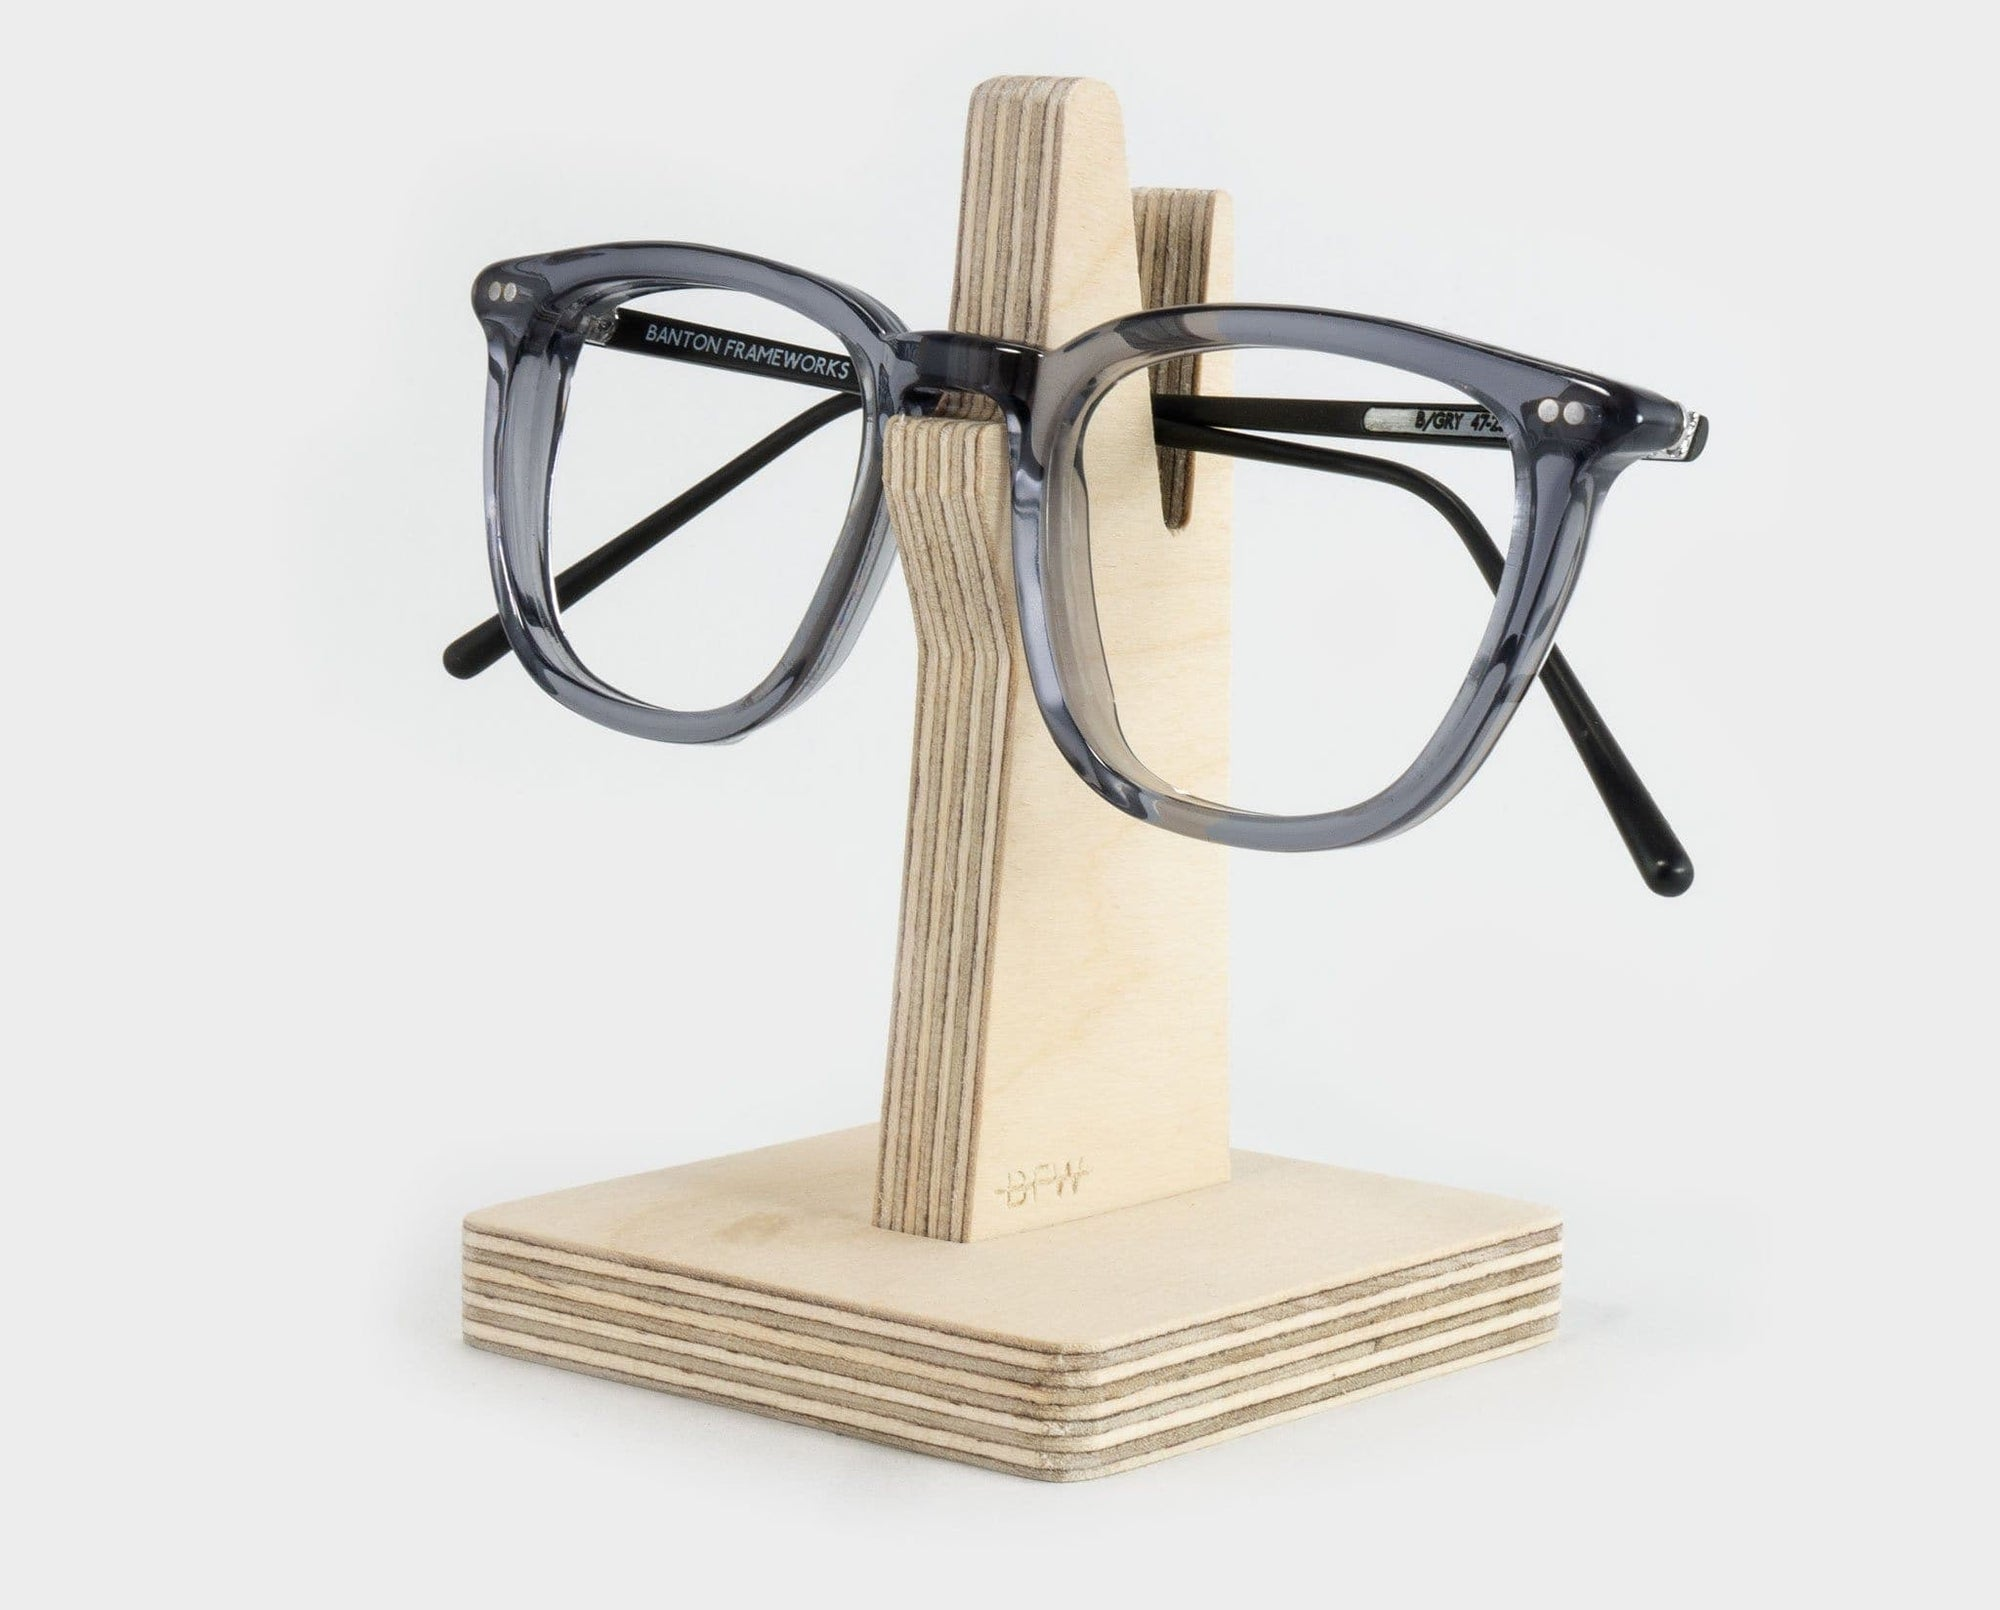 Wooden spectacle holder with glasses